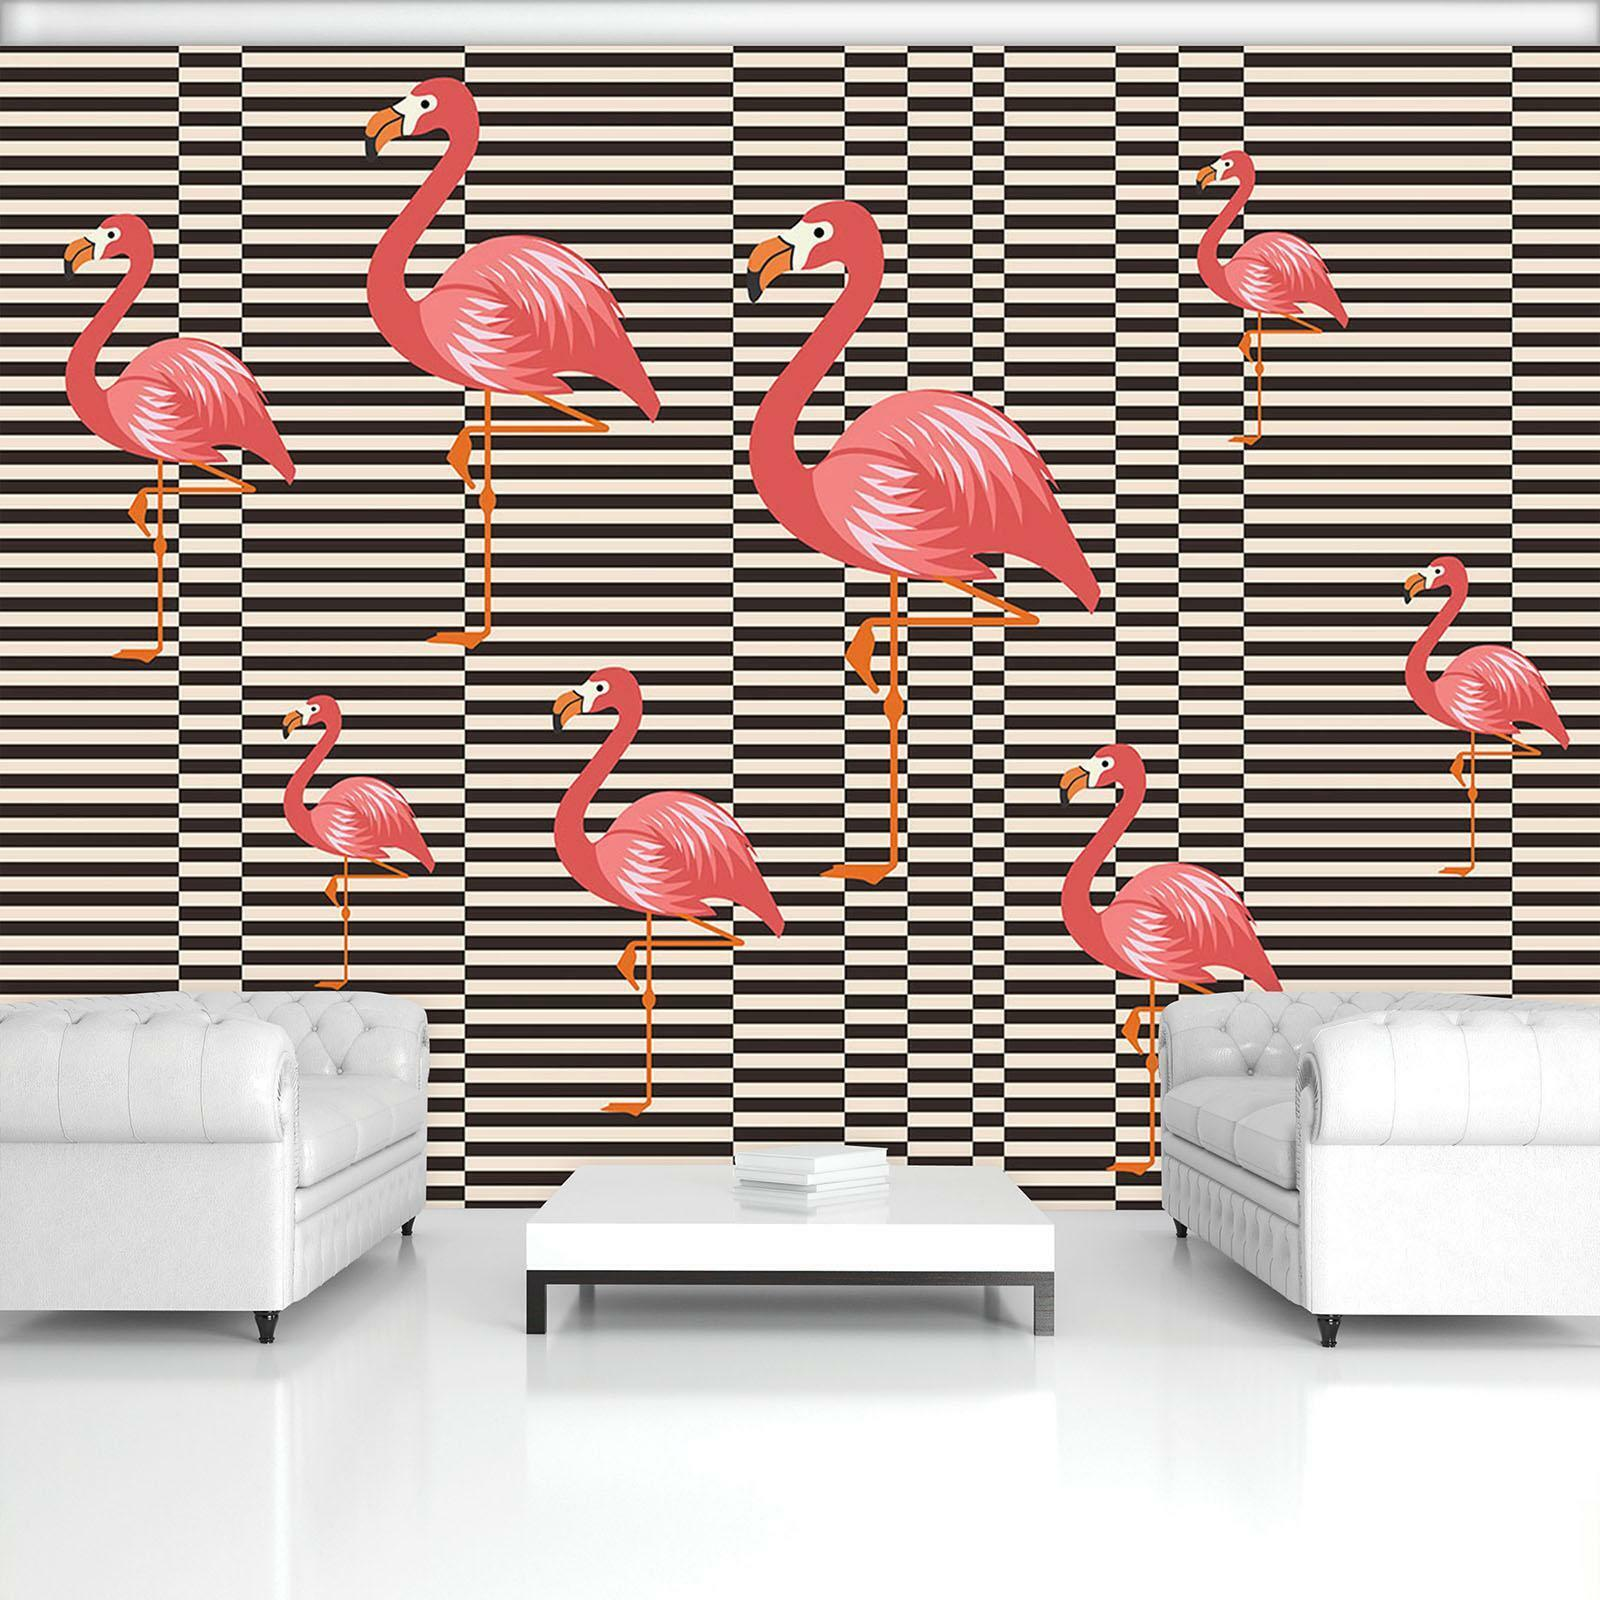 Photo Wallpaper Mural Non-woven 11143_VEN Flamingo Abstraction Art Geometry Mode